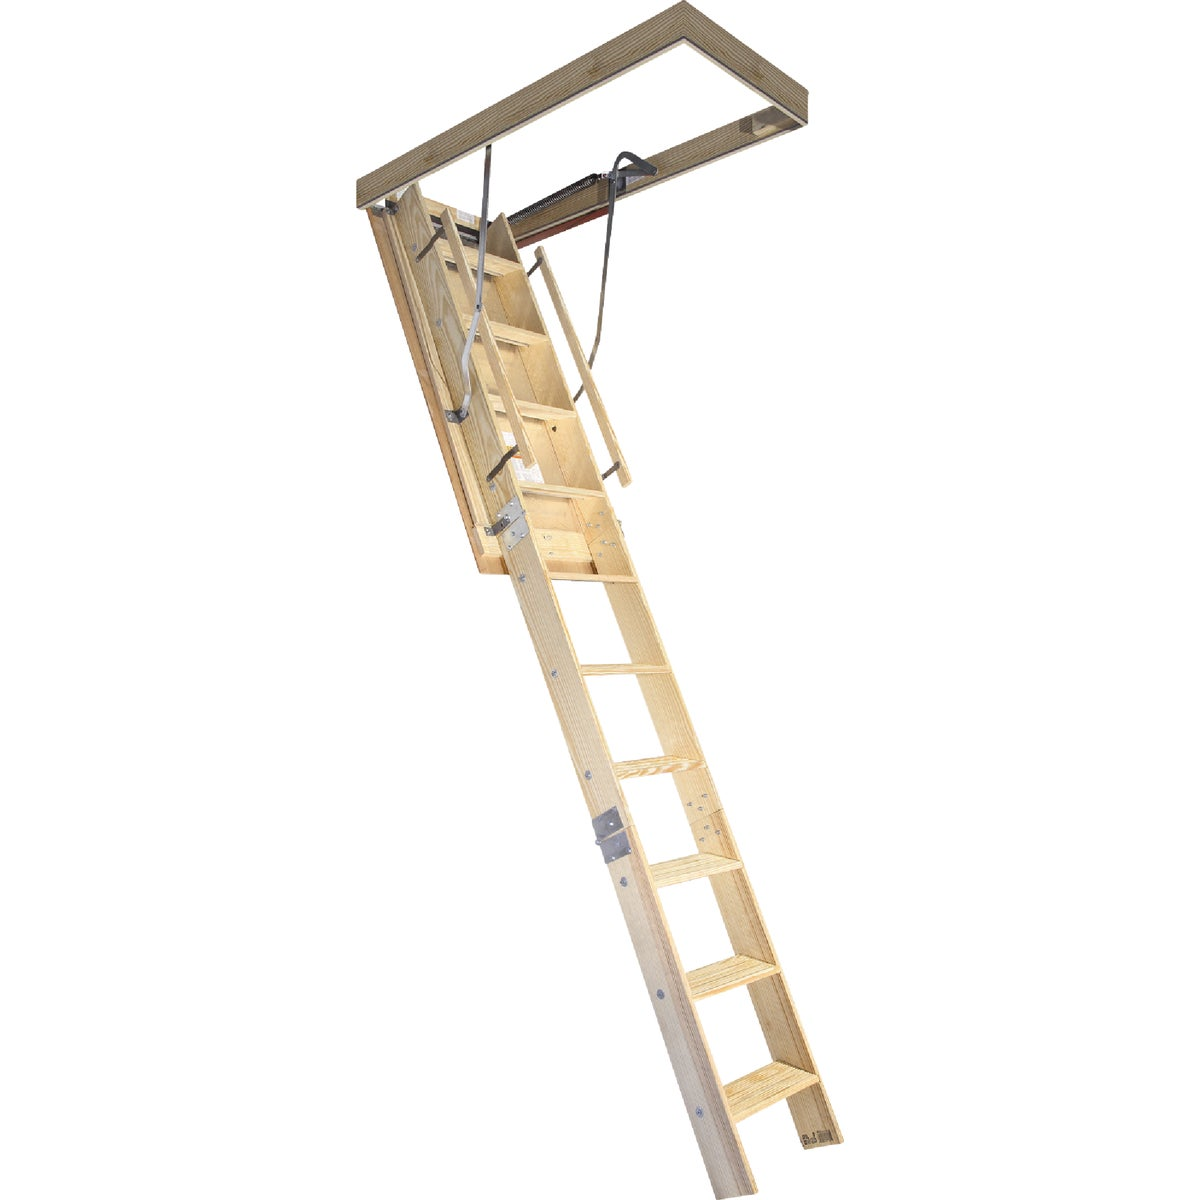 30X54X120 ATTIC STAIR - AG-100 by Louisville Ladder